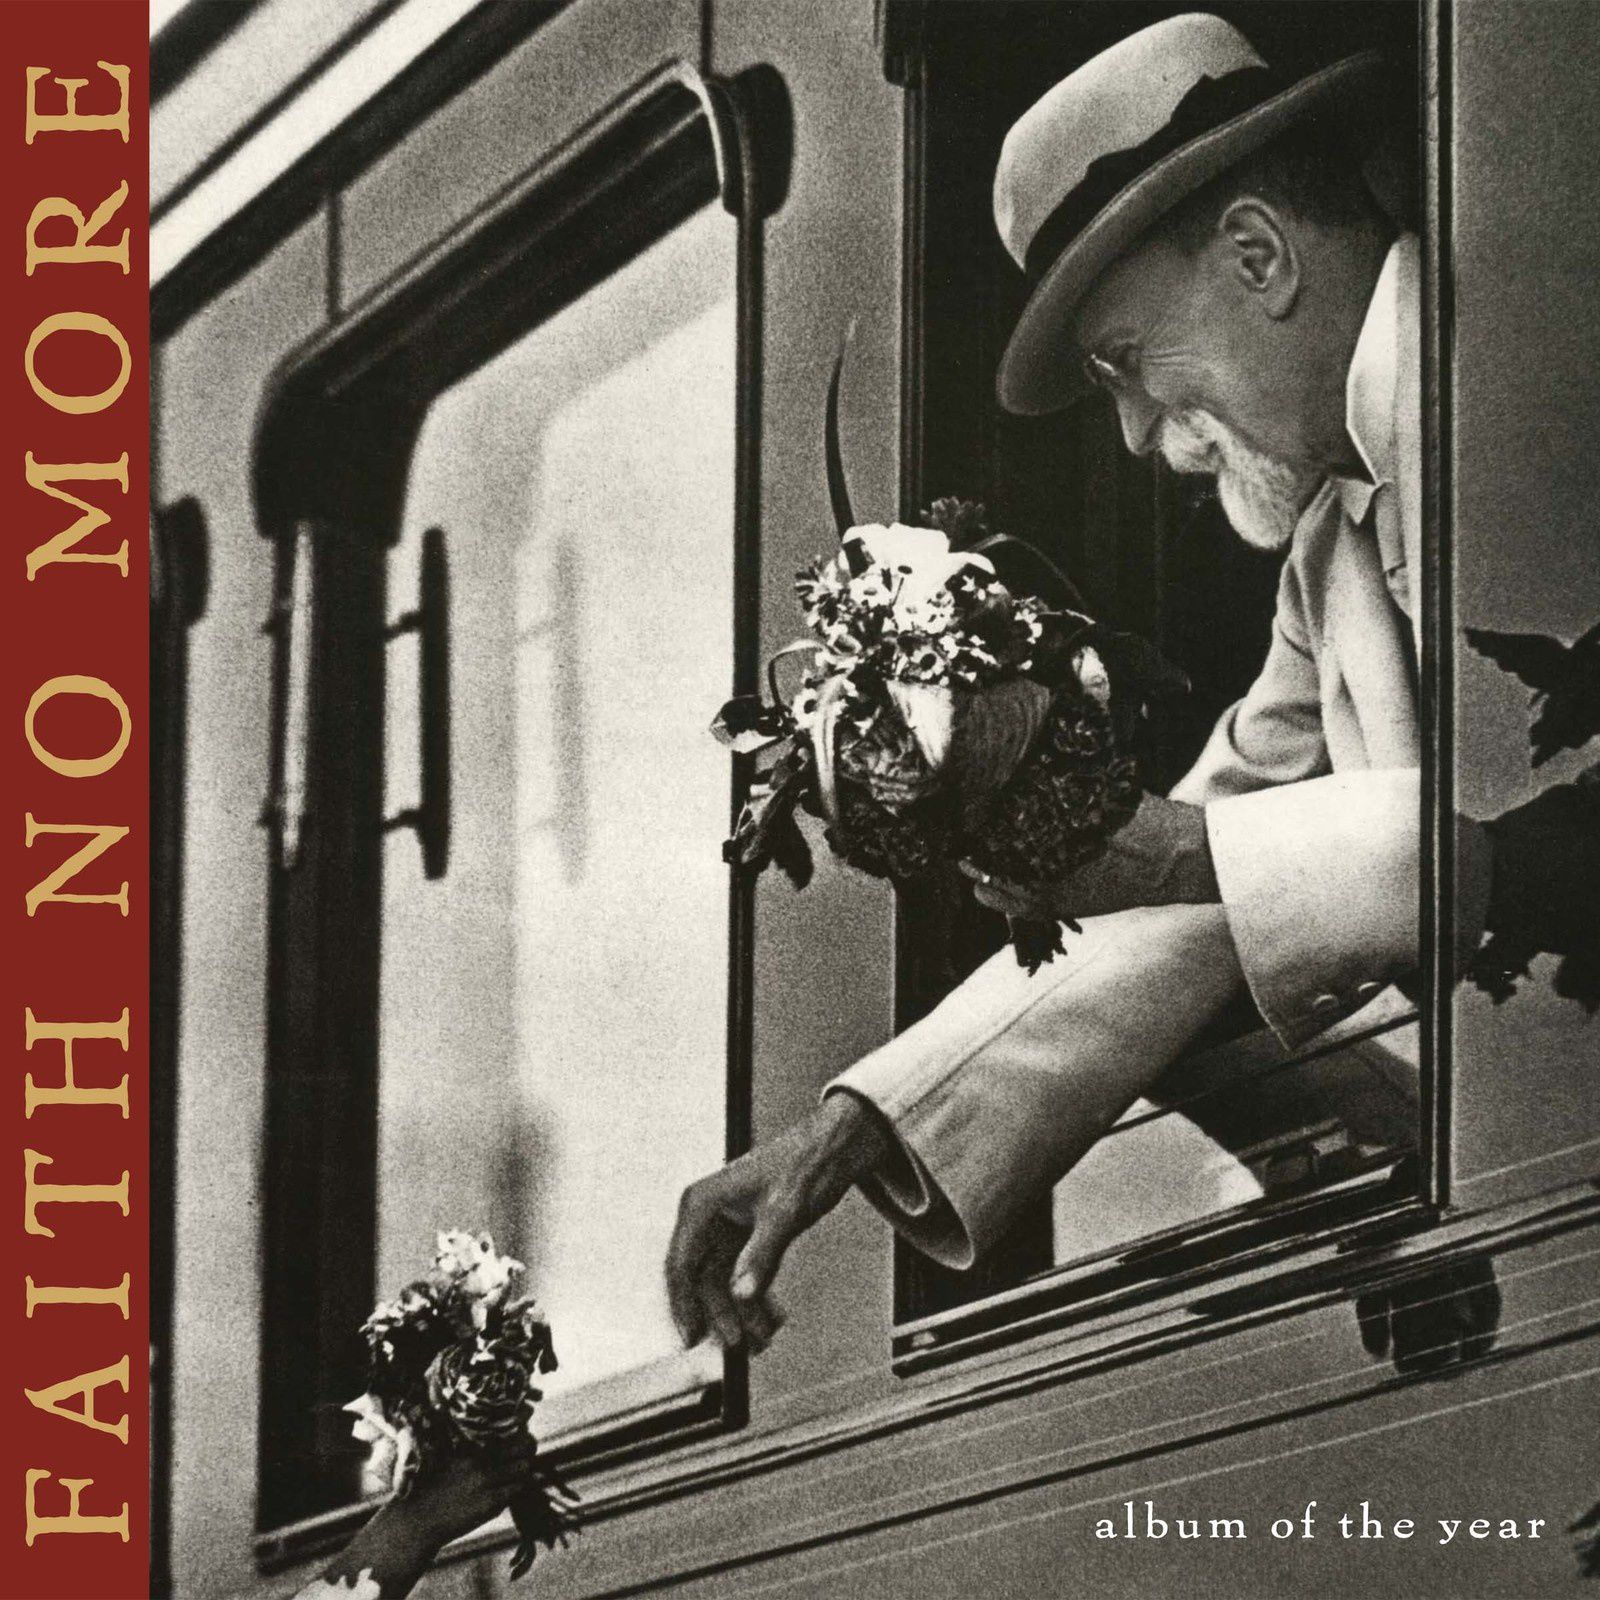 """CD review FAITH NO MORE """"King for Day...Fool for a Lifetime"""" & """"Album of the Year"""" re-issue"""